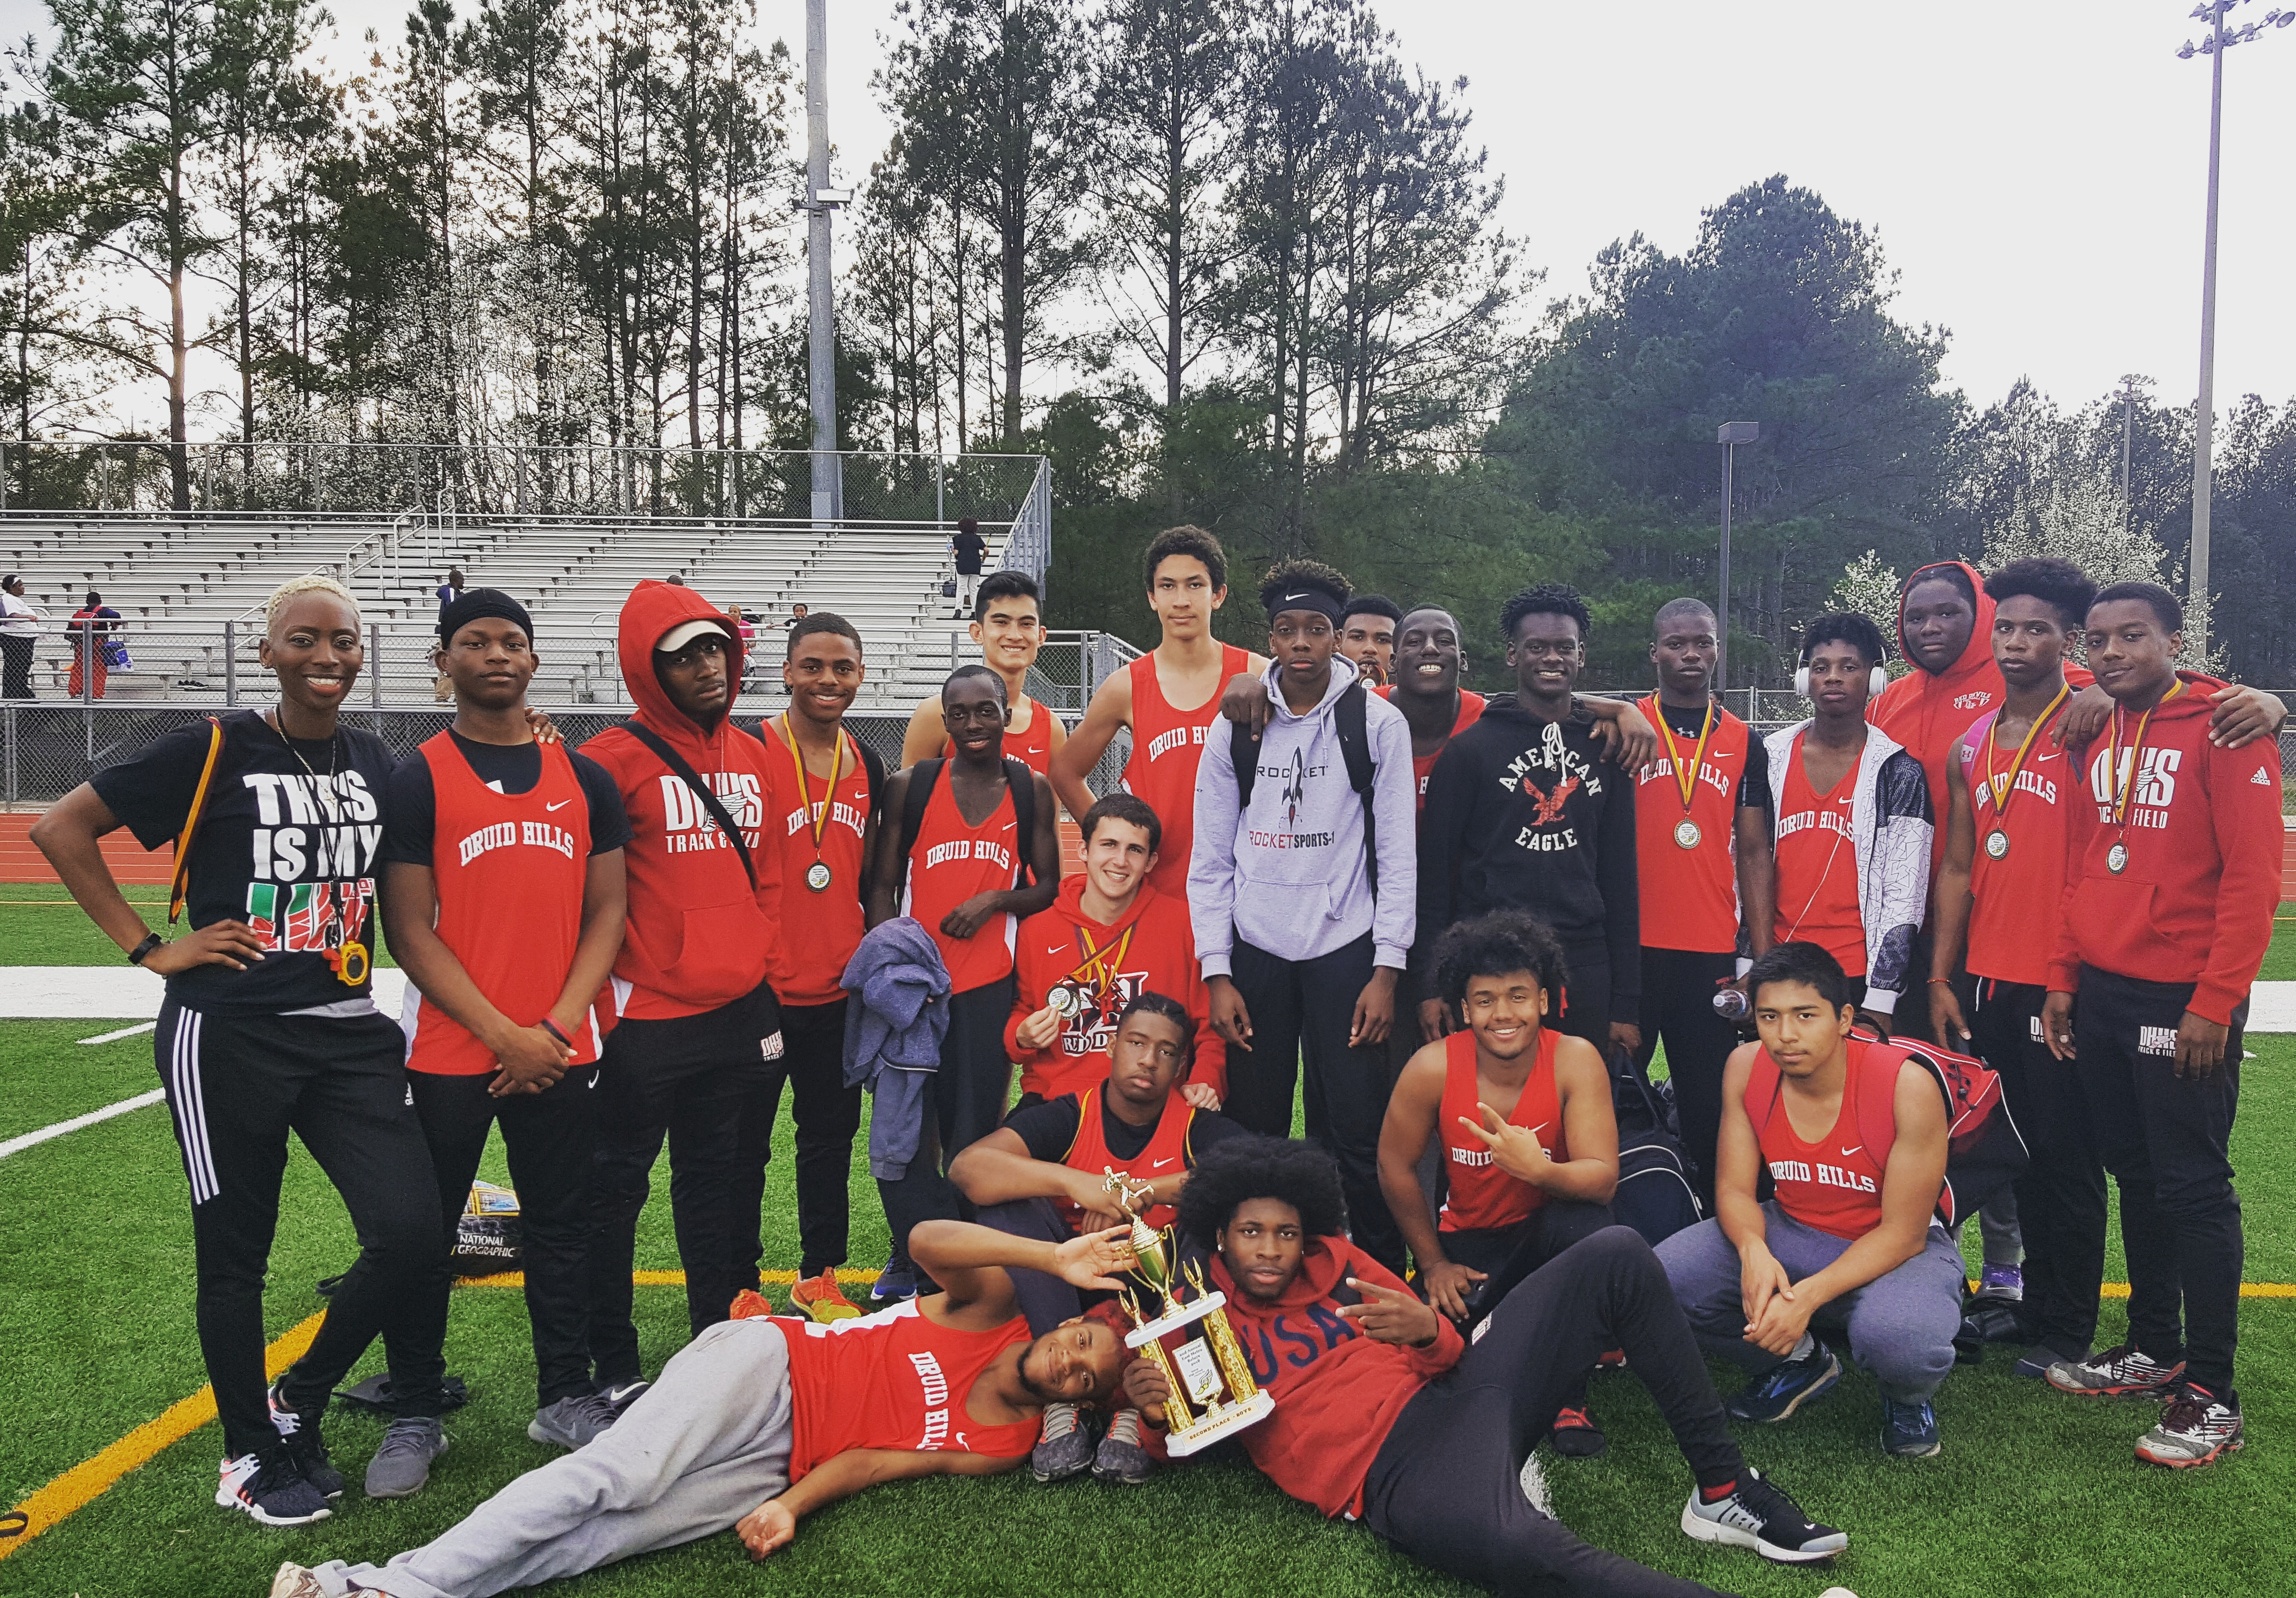 BOYS TRACK FINISHES 2ND AT EAST METRO RELAYS!